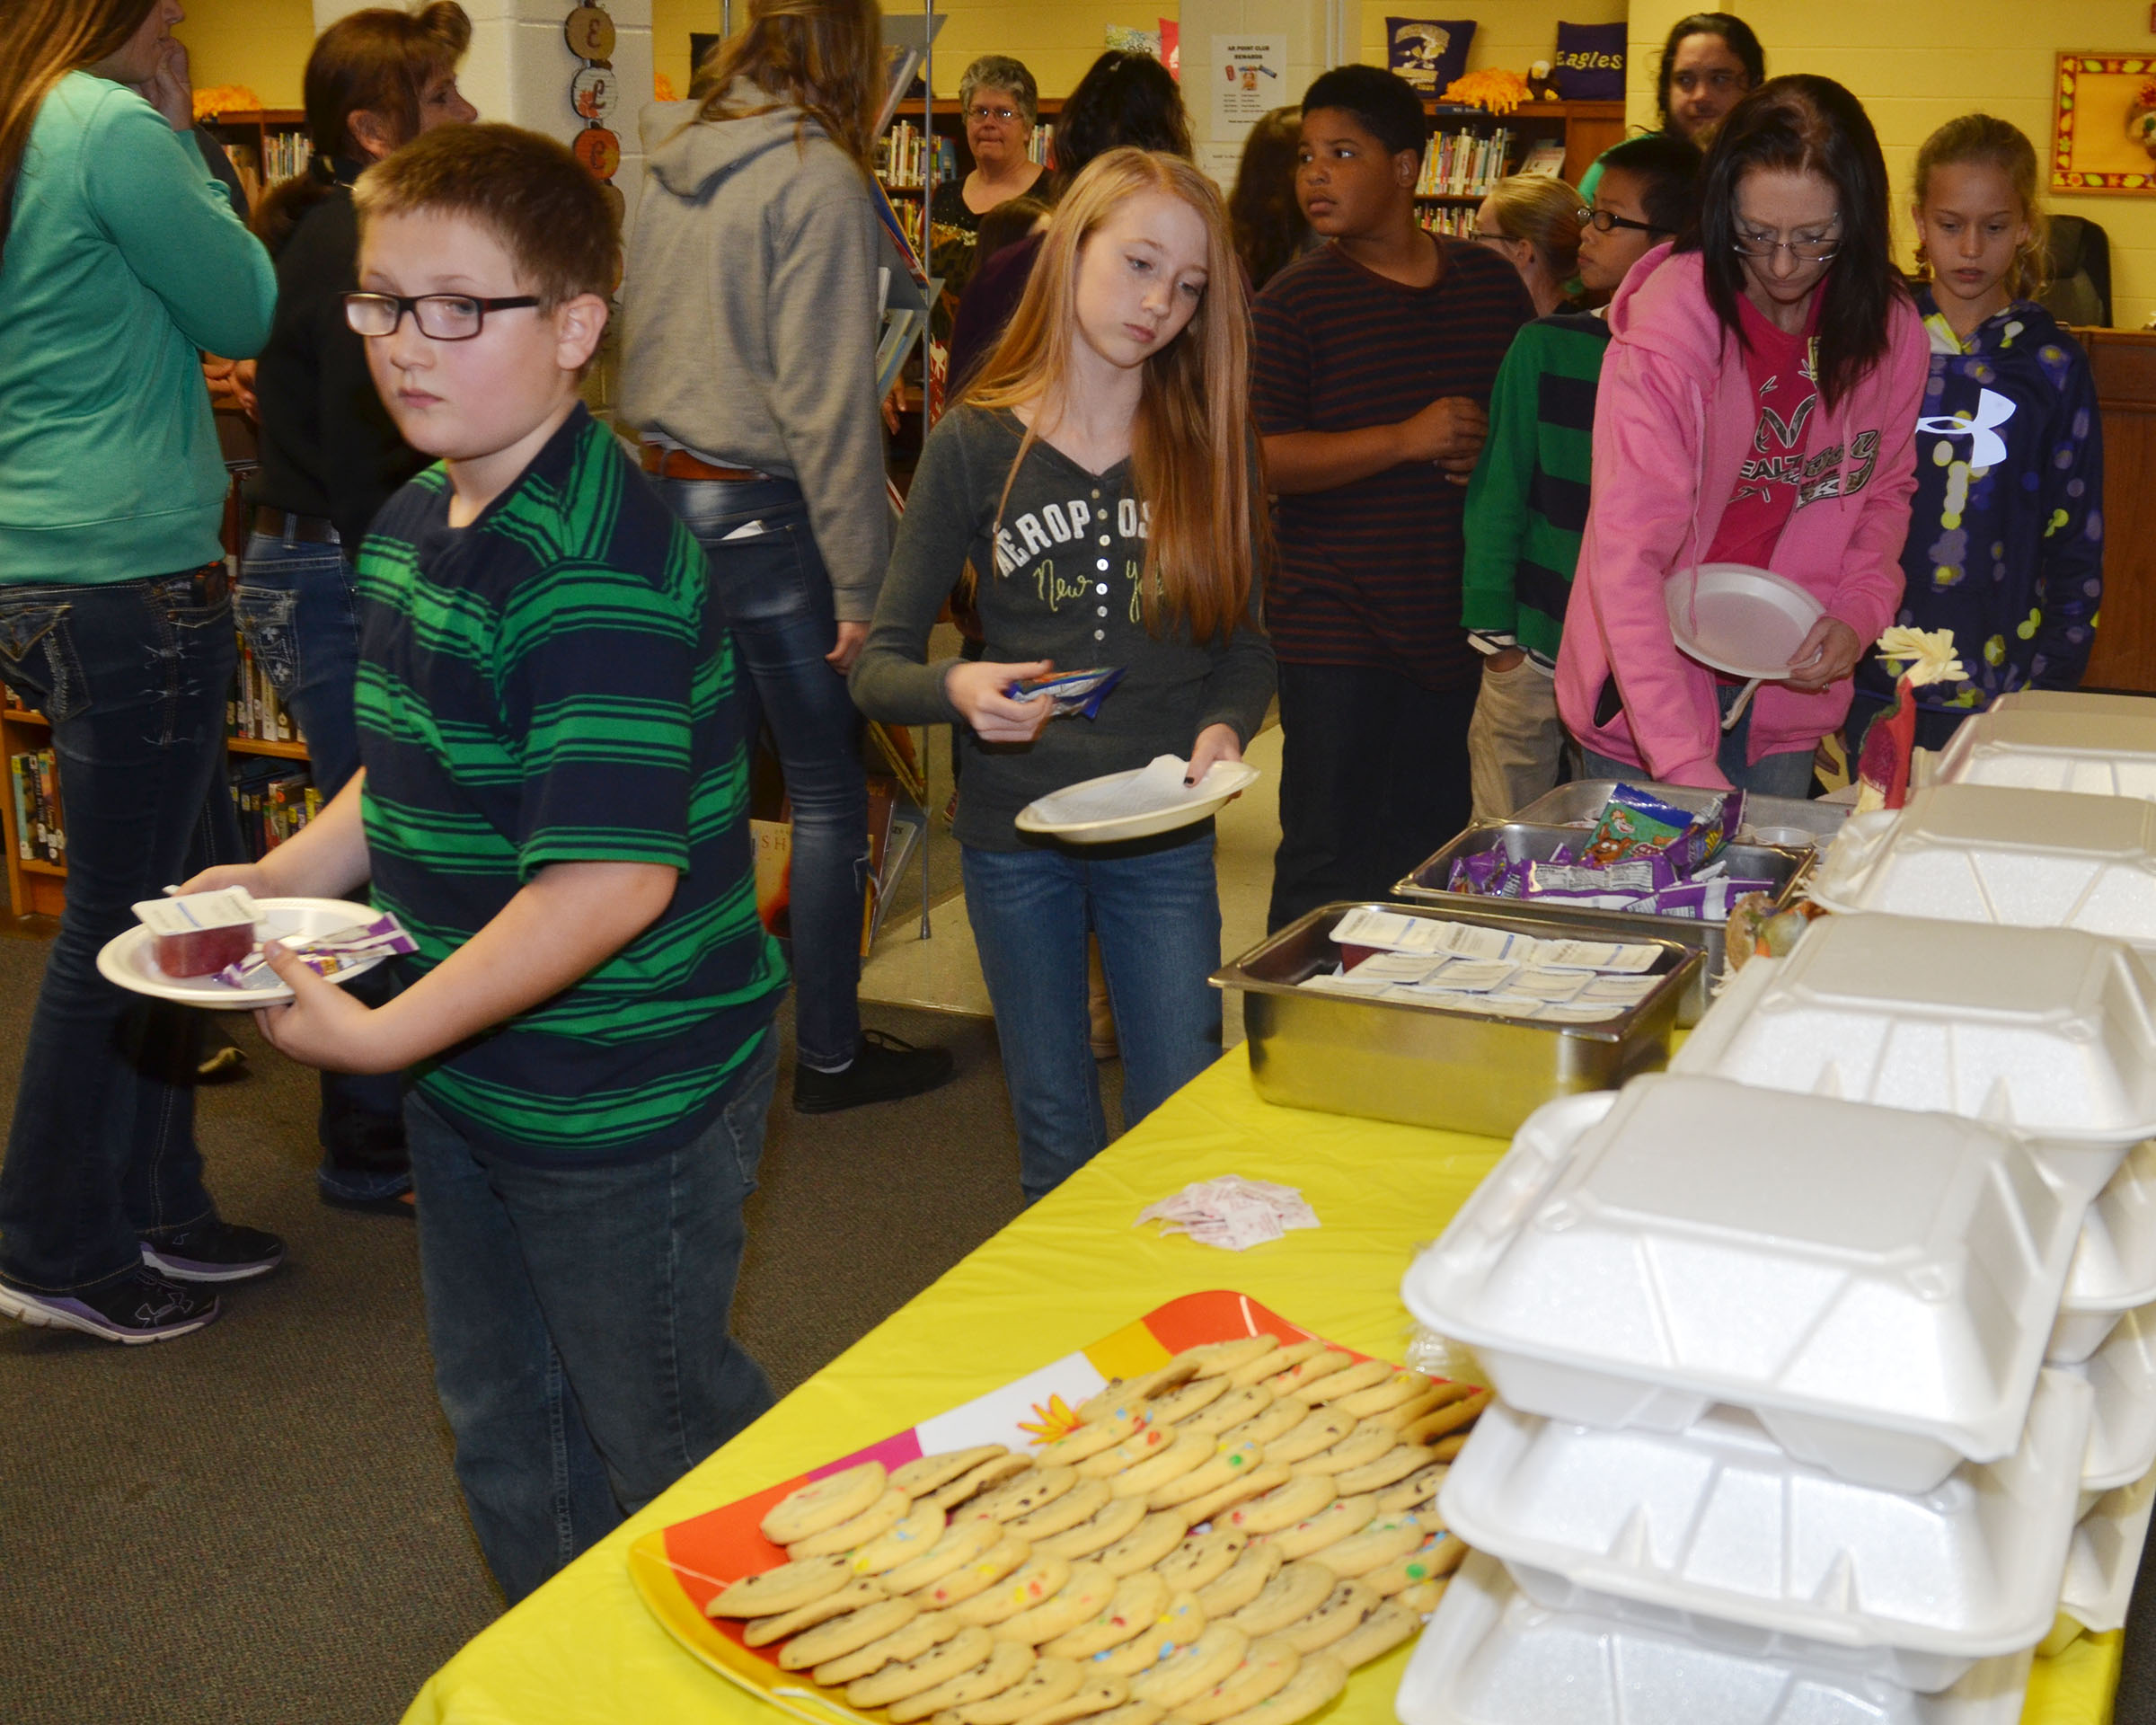 CMS student leaders are served a Thanksgiving lunch, with cookies for dessert.